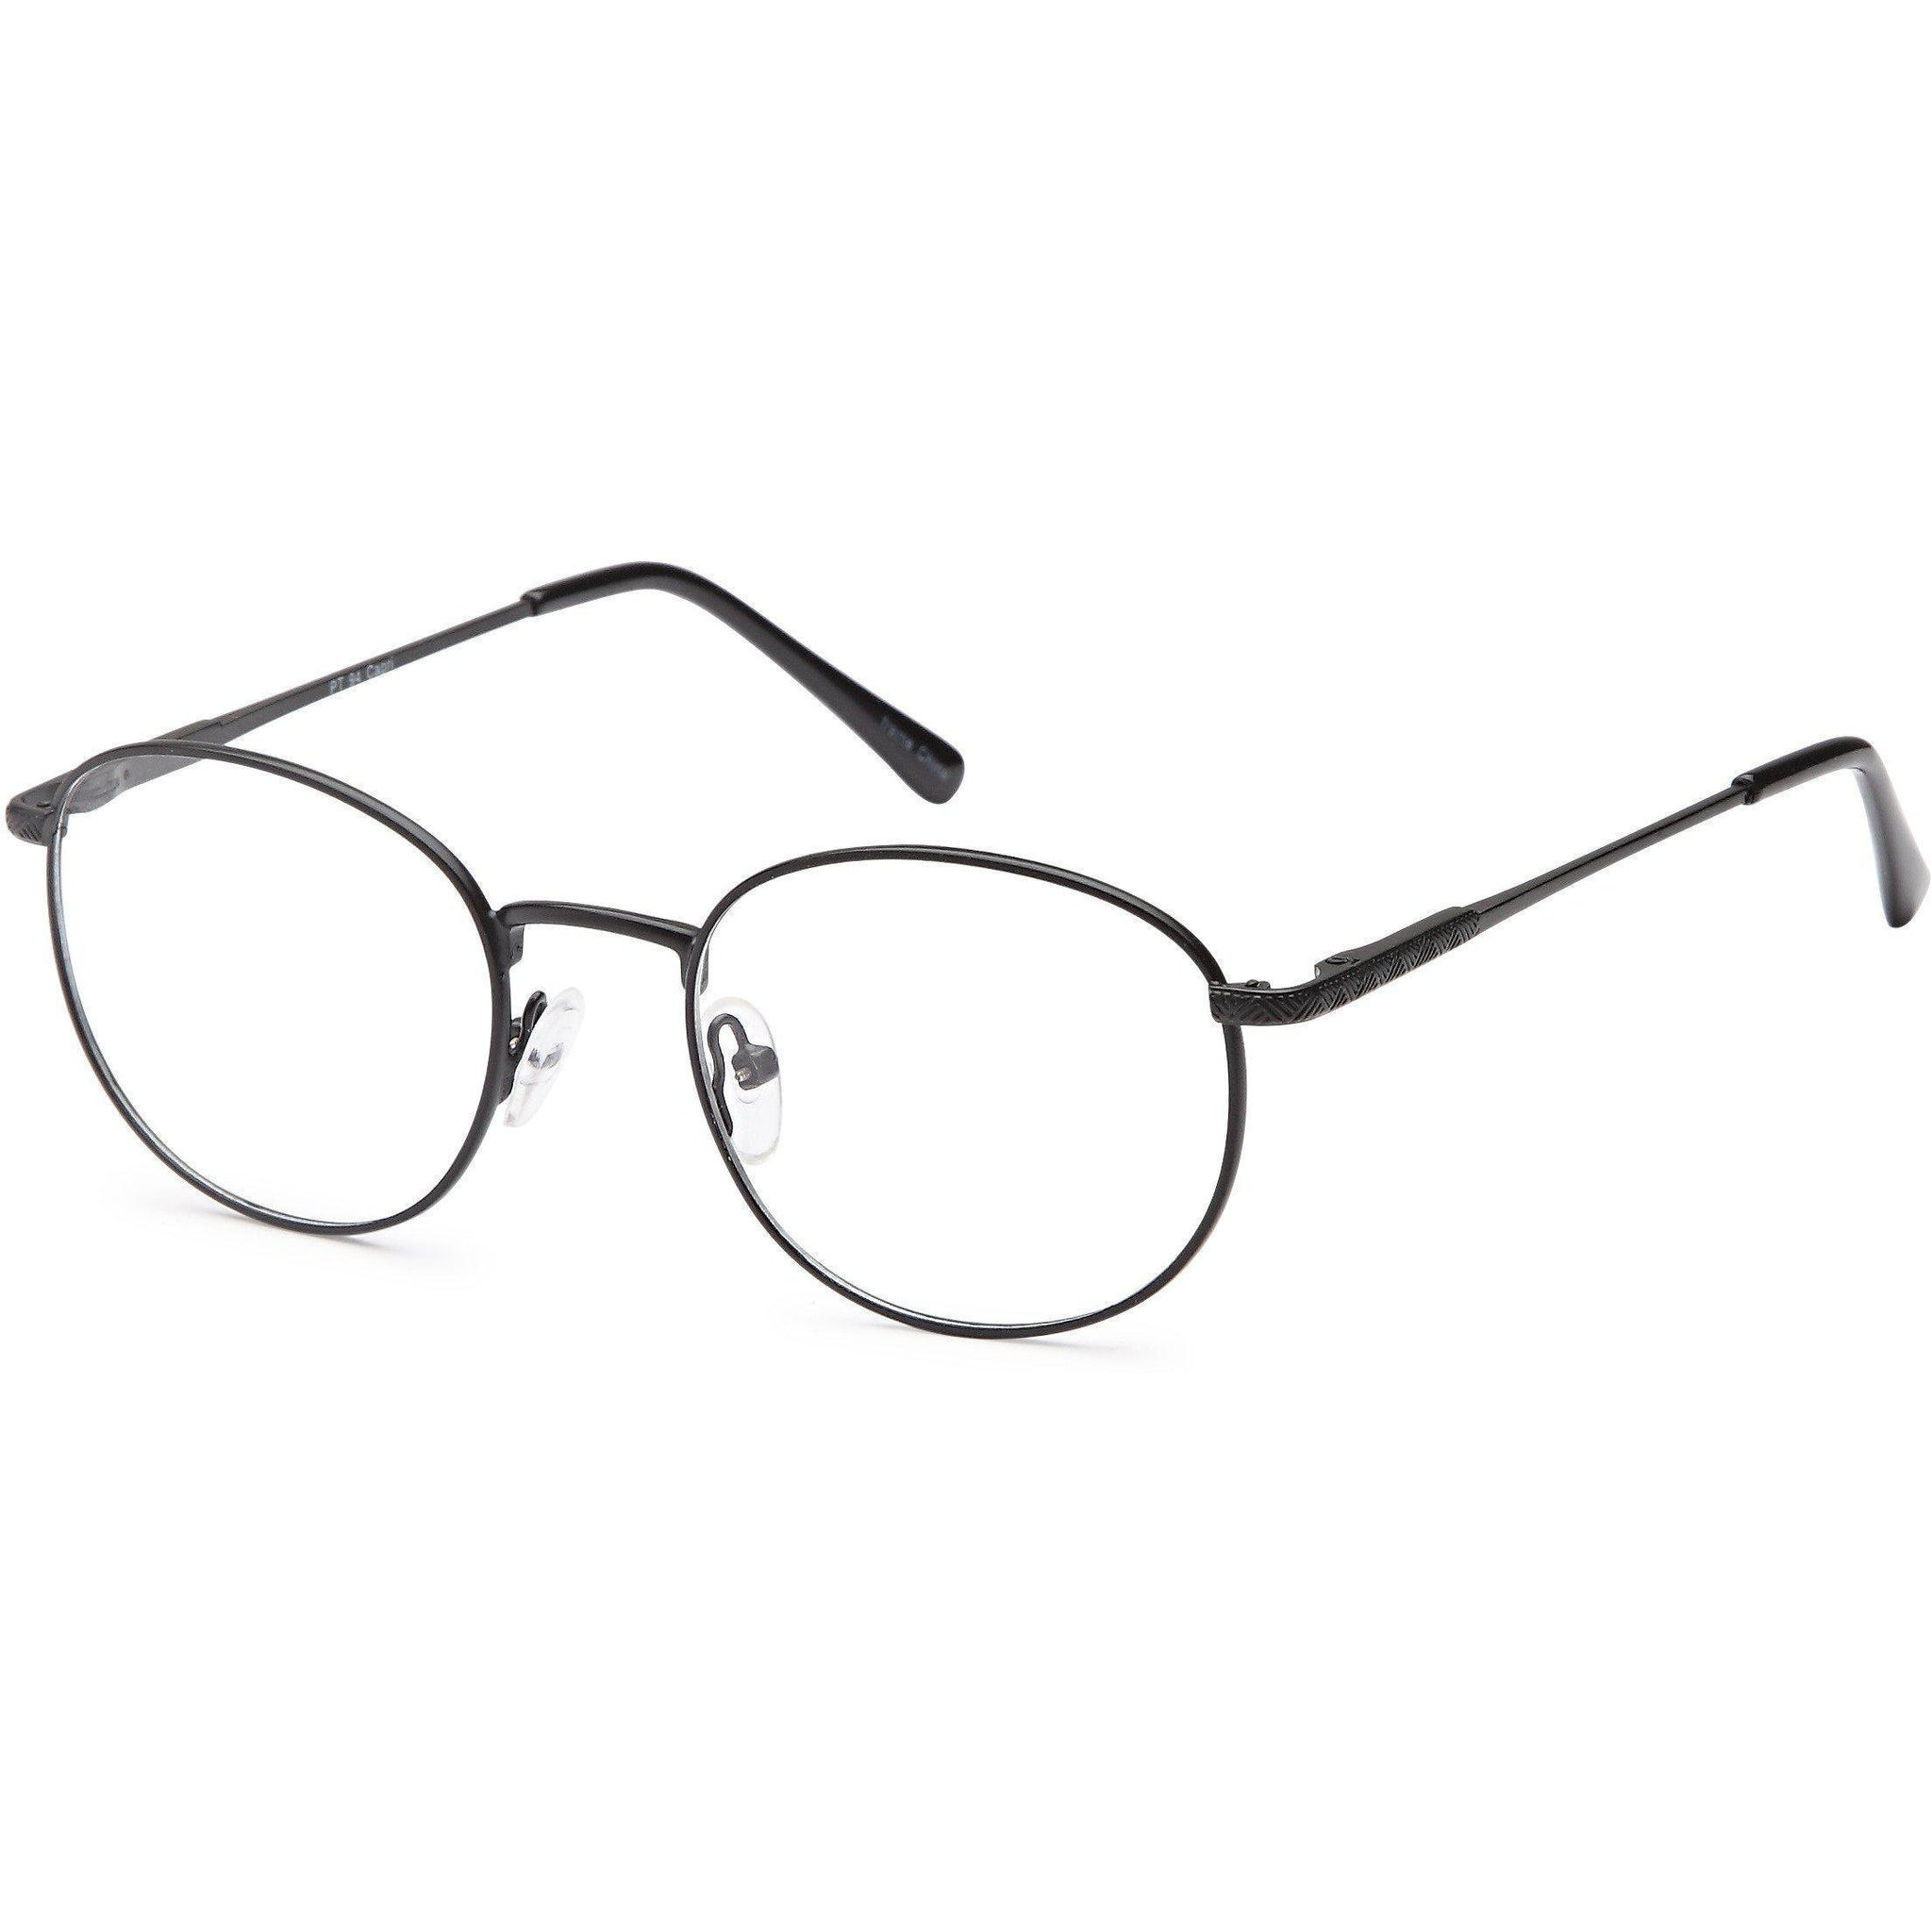 Appletree Prescription Glasses PT 94 Eyeglasses Frame